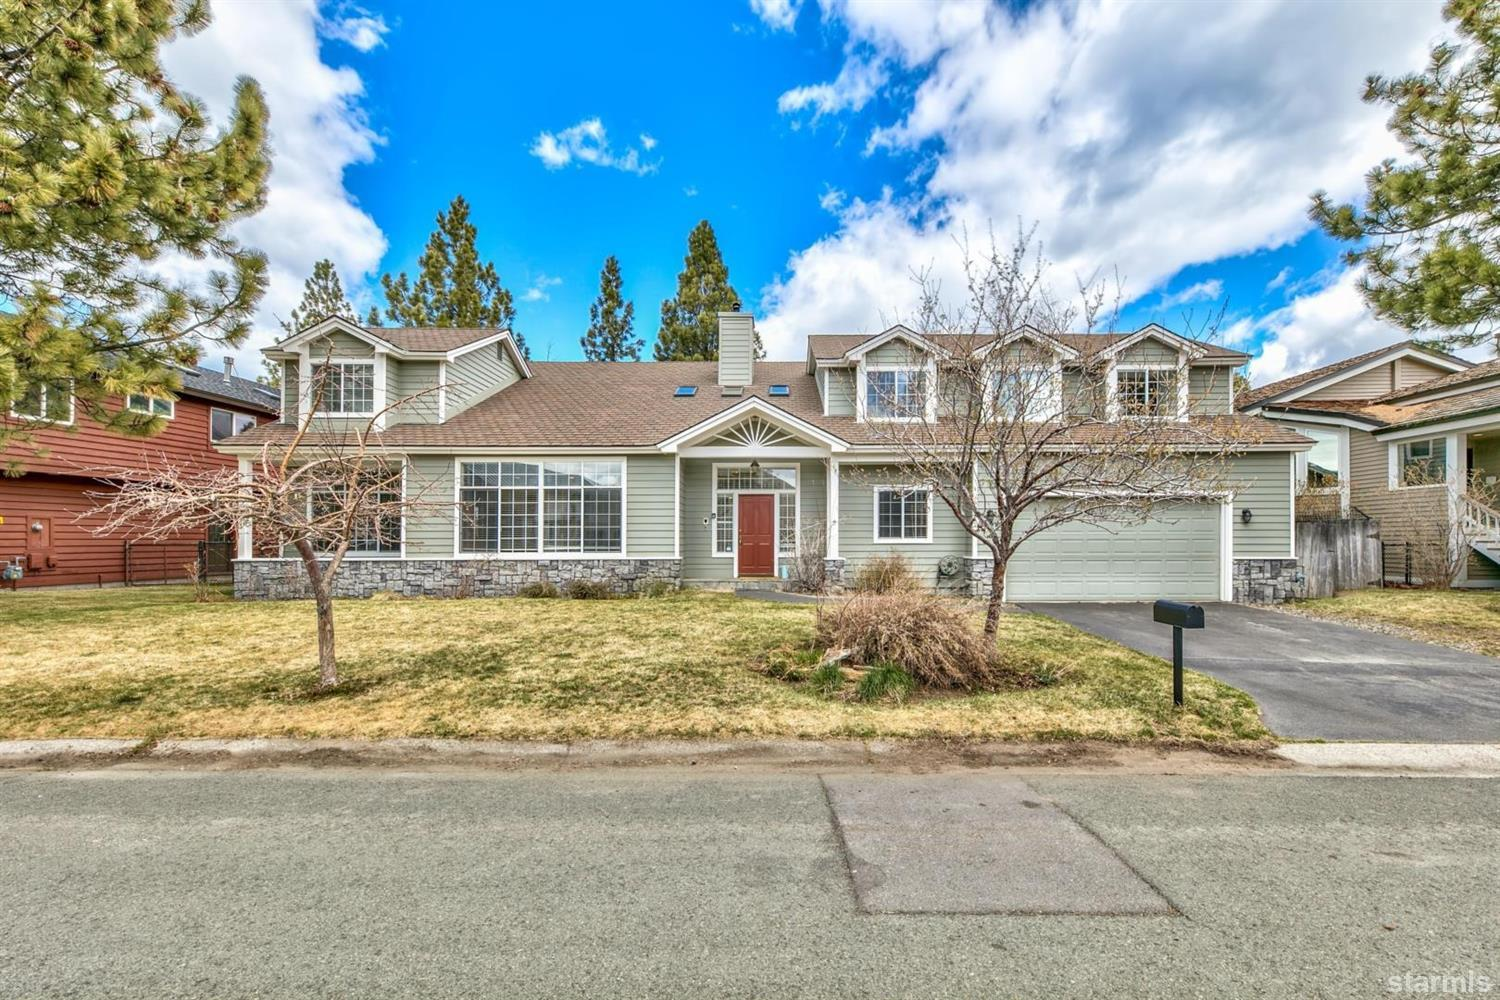 Image for 1975 Marconi Way, South Lake Tahoe, CA 96150